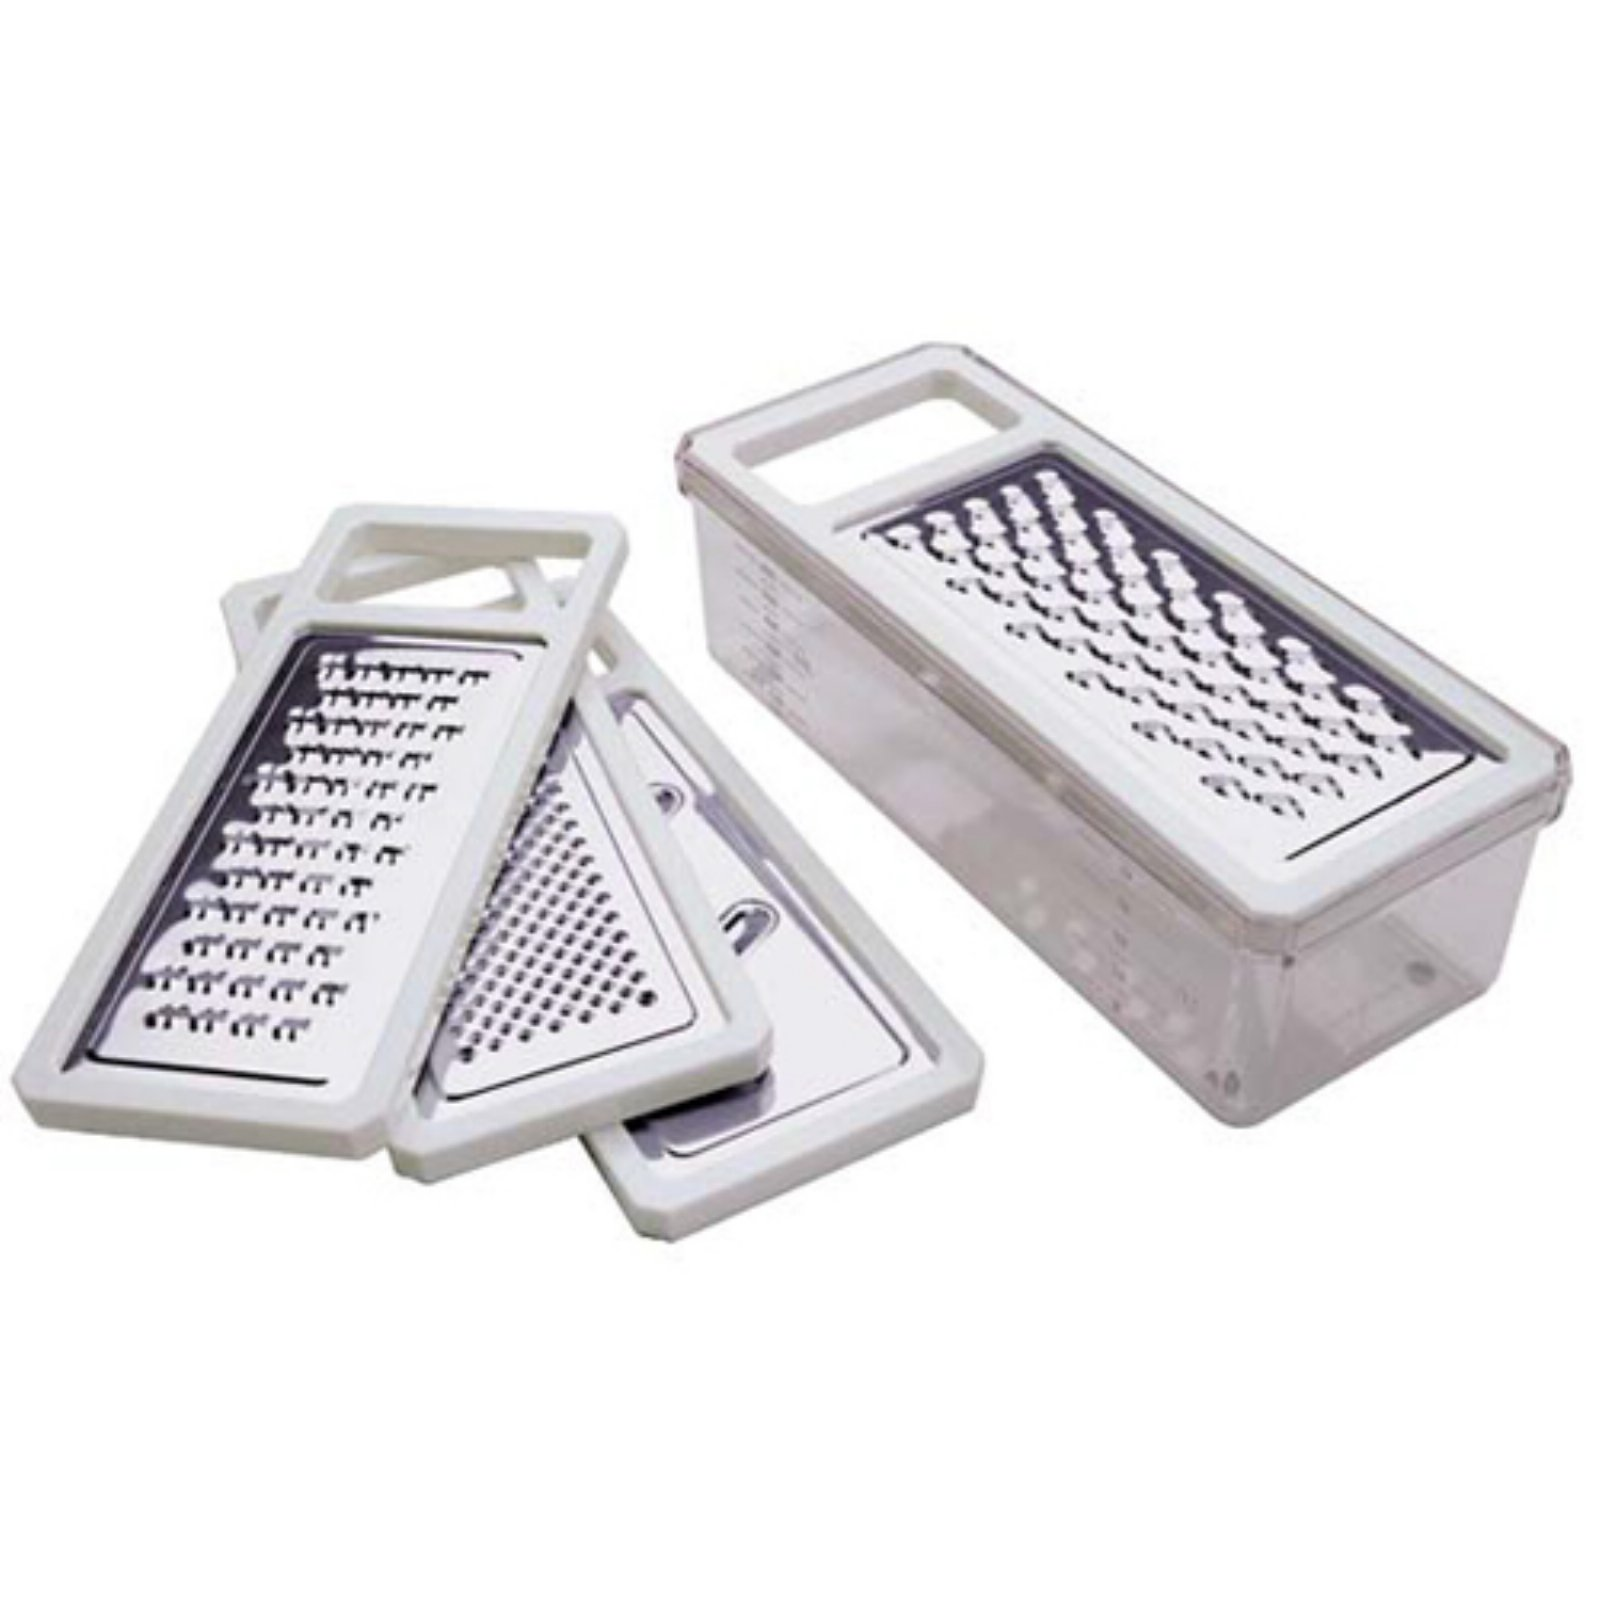 Progressive Housewares HG84 5 Piece Boxed Grater Set